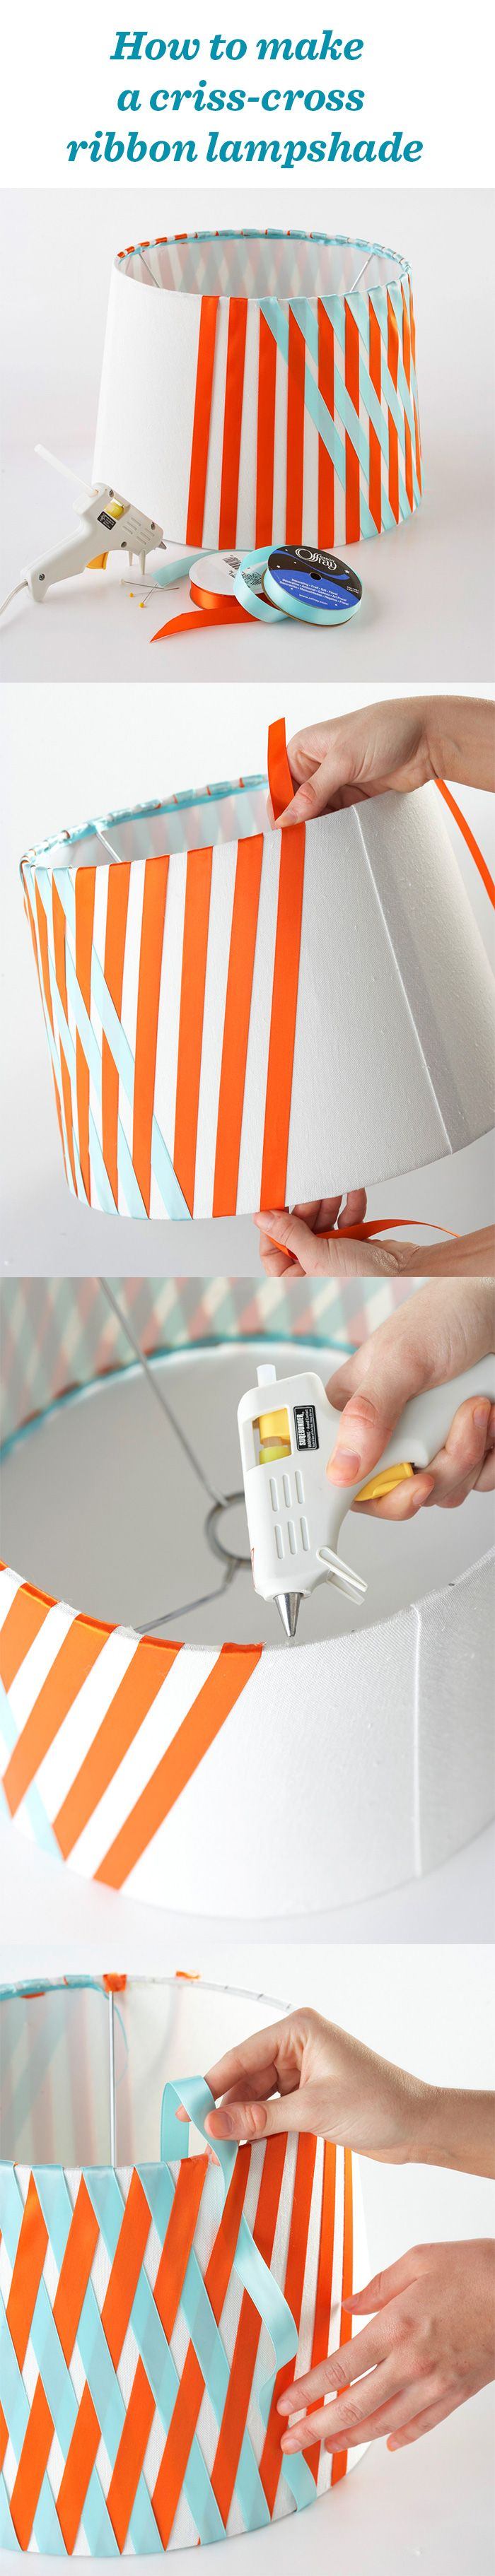 How to make a criss-cross ribbon lampshade and more easy no-sew ribbon projects: http://www.midwestliving.com/homes/decorating-ideas/no-sew-ribbon-projects/